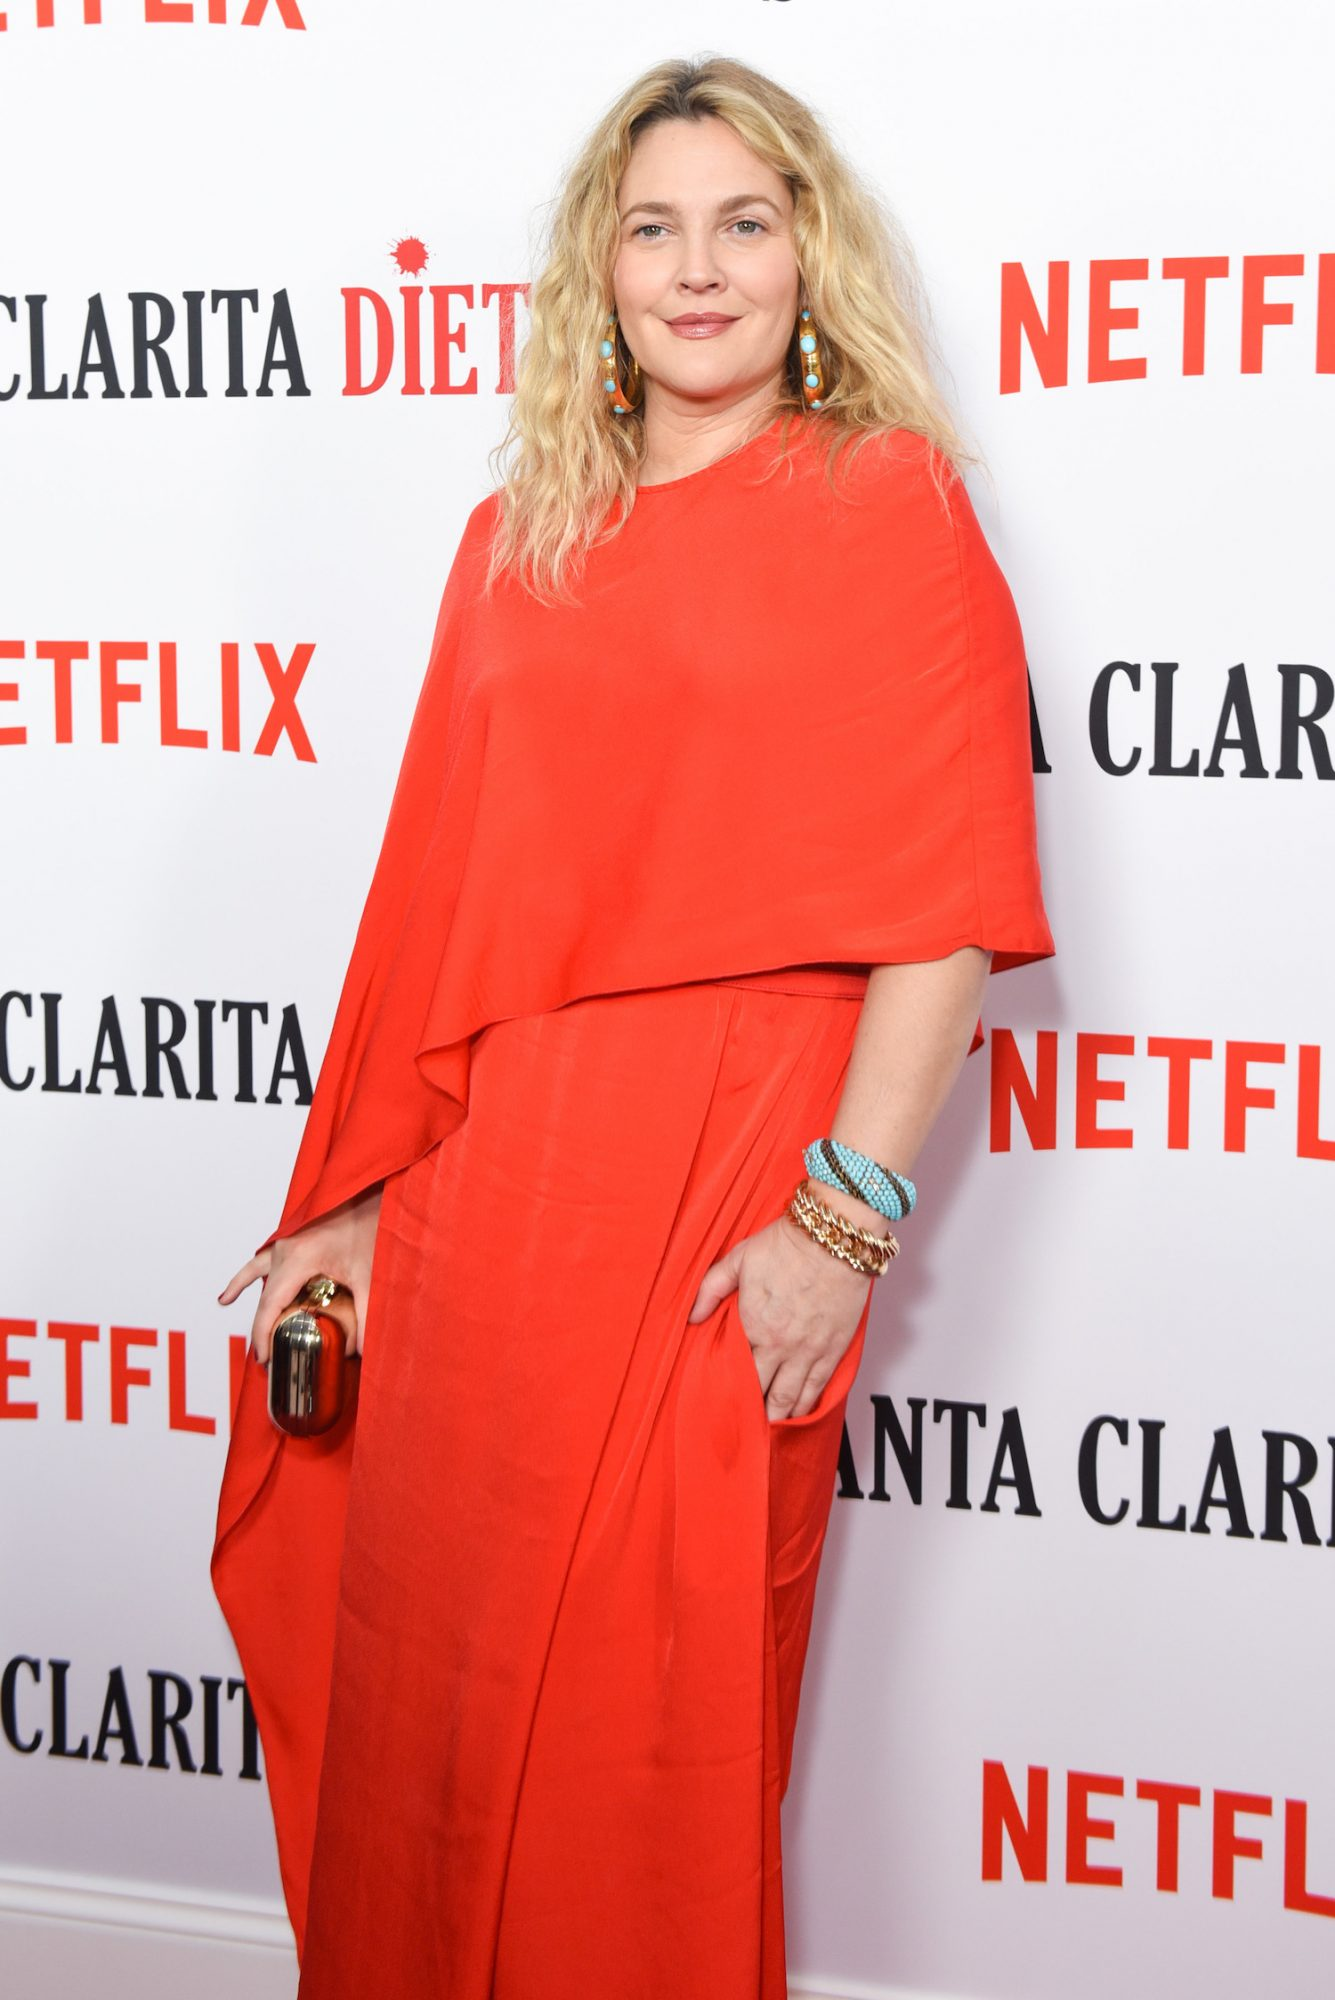 Drew Barrymore at the 'Santa Clarita Diet' Season 2 Premiere